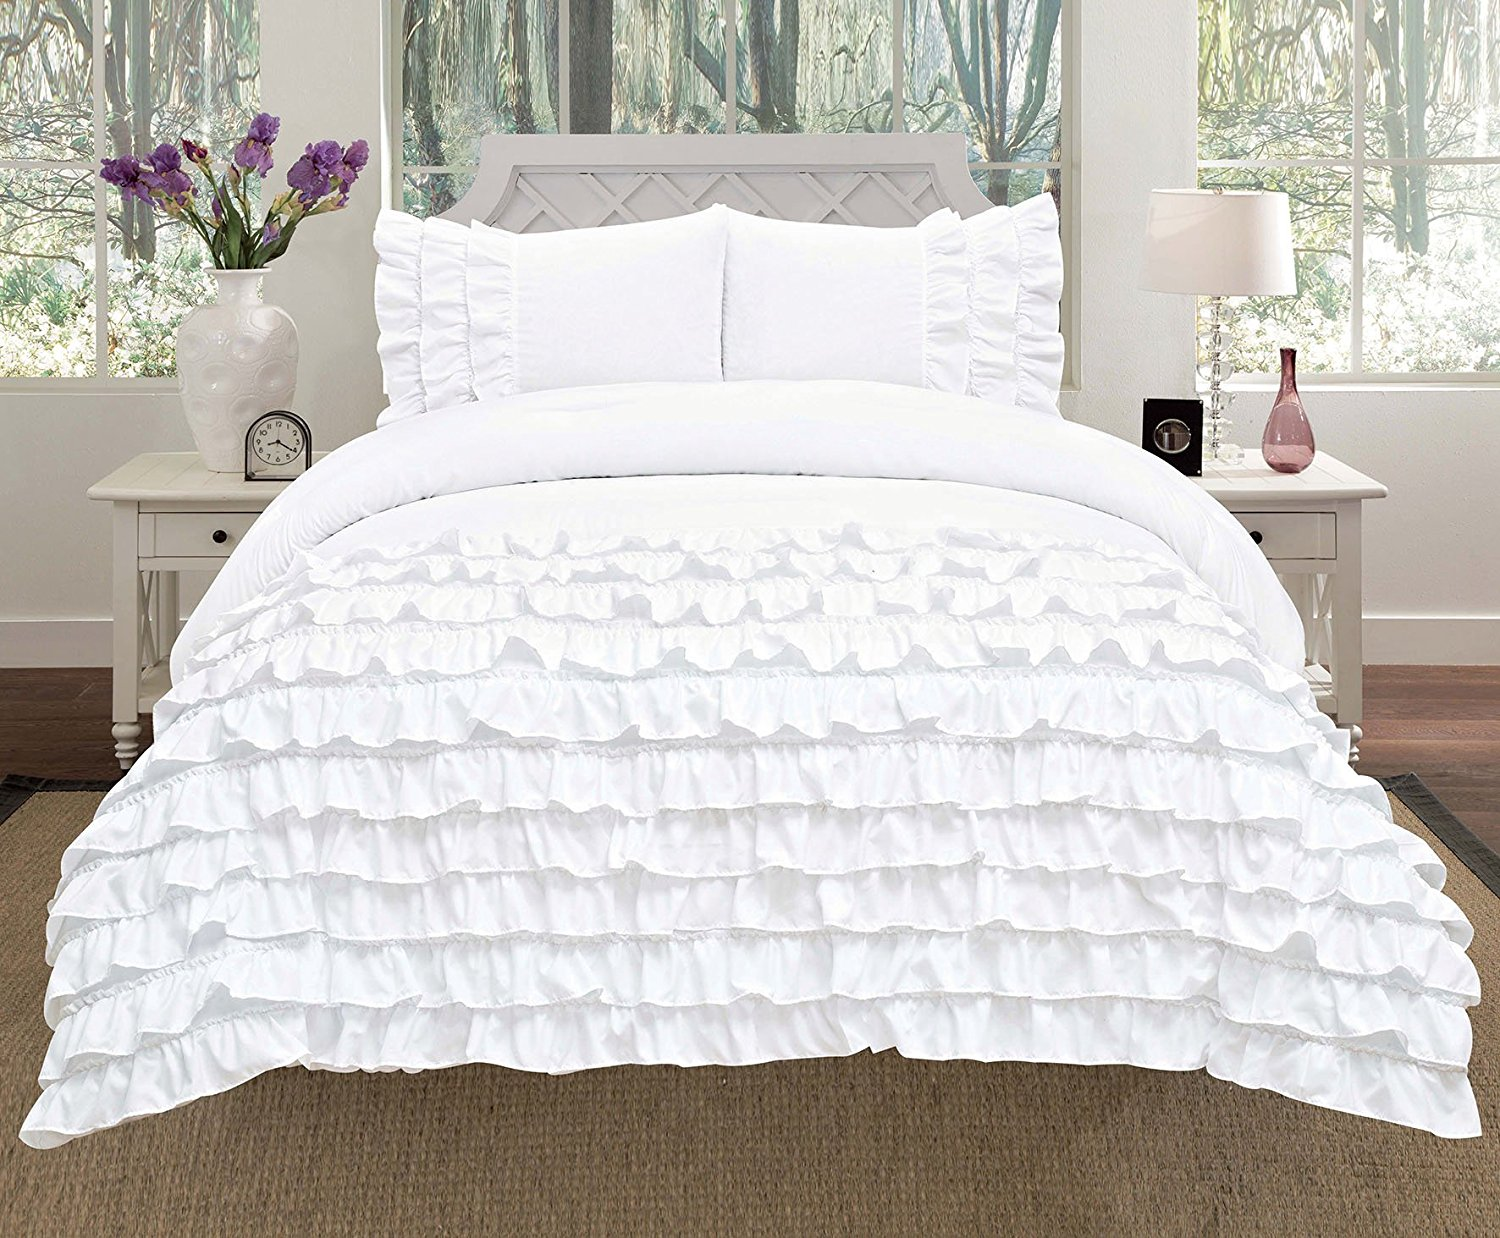 Empire Home 3 Piece Katy Pleated Ruffled Comforter Set   Queen Size   White